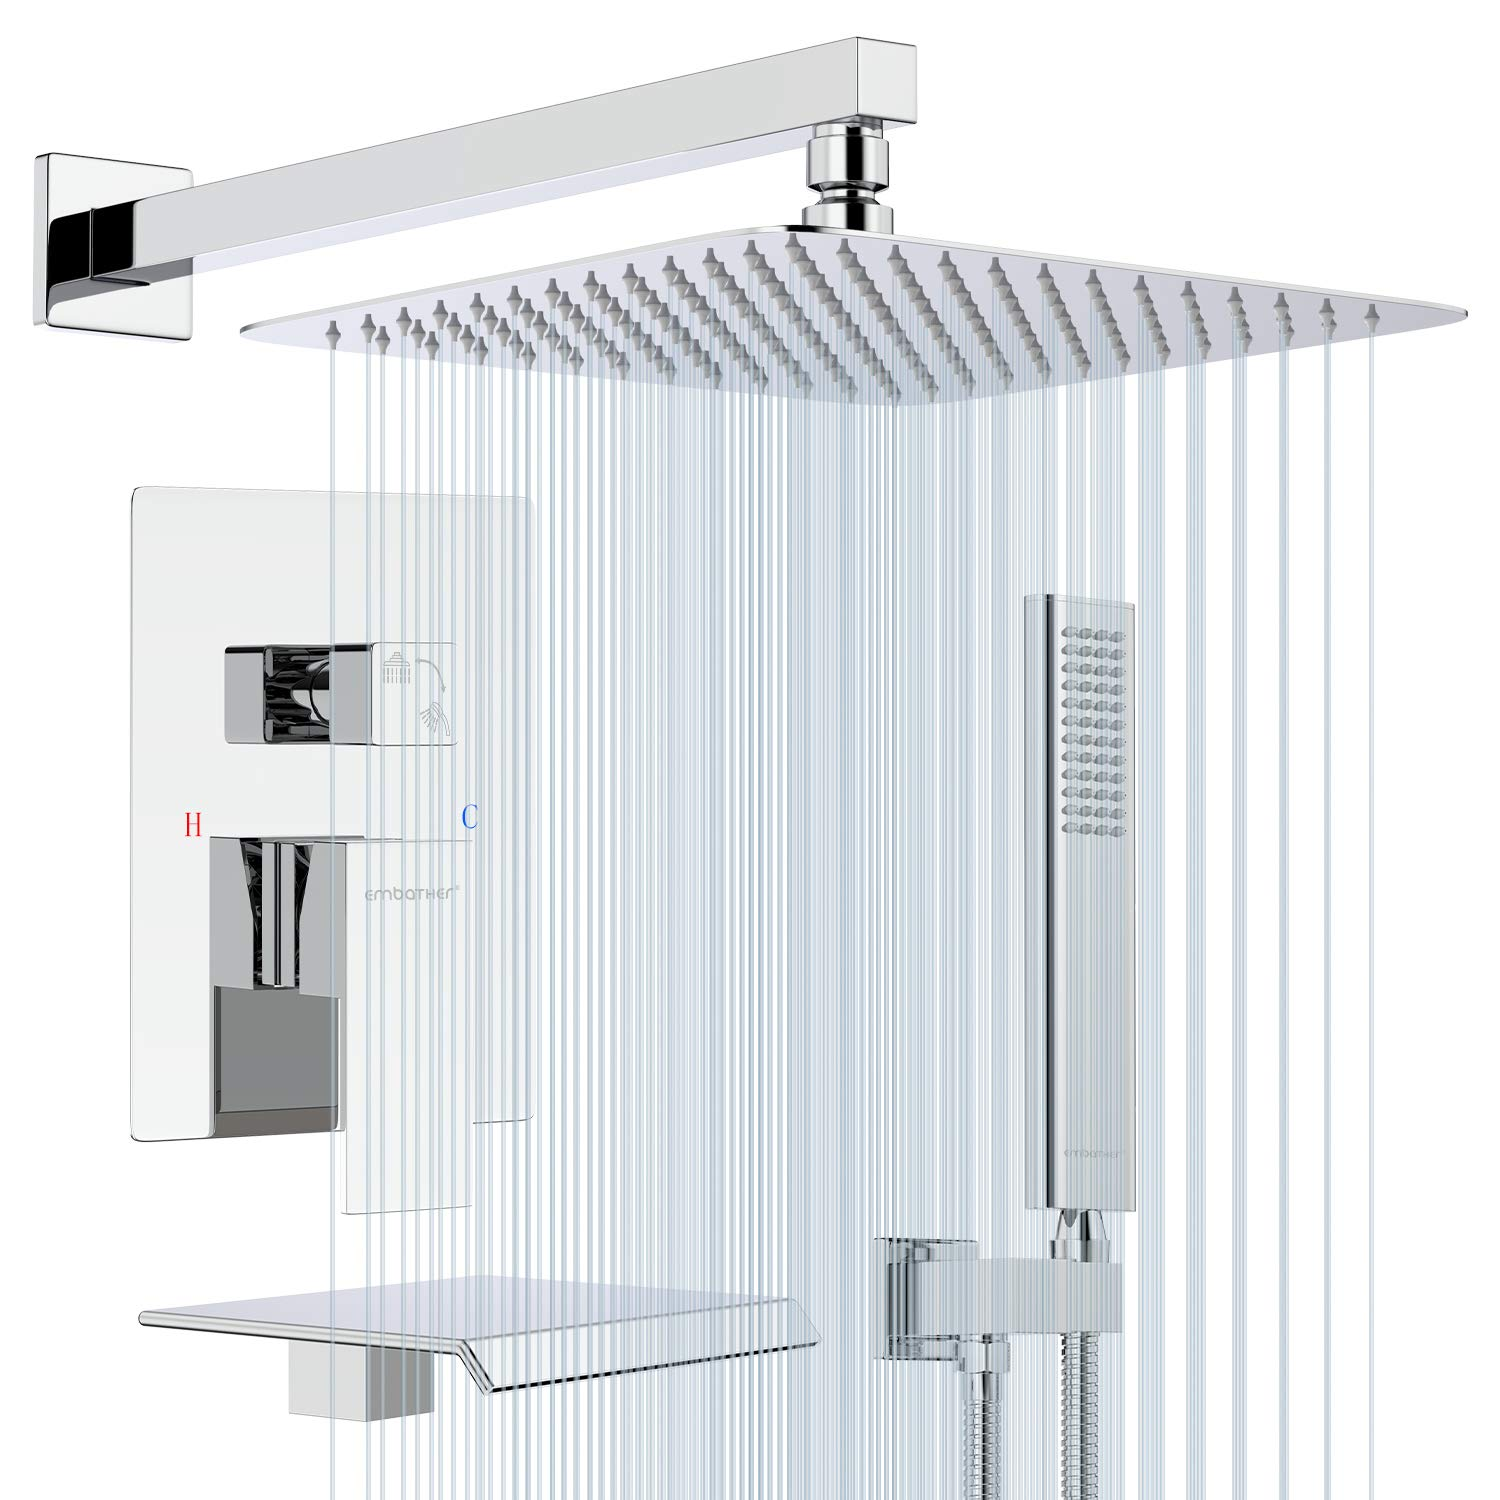 EMBATHER Shower System with Waterfall Tub Spout- 12 Inches Chrome Rain Shower Tub Faucet Set with Square Showerhead and Handhled-Eco-Friendly(Valve included)